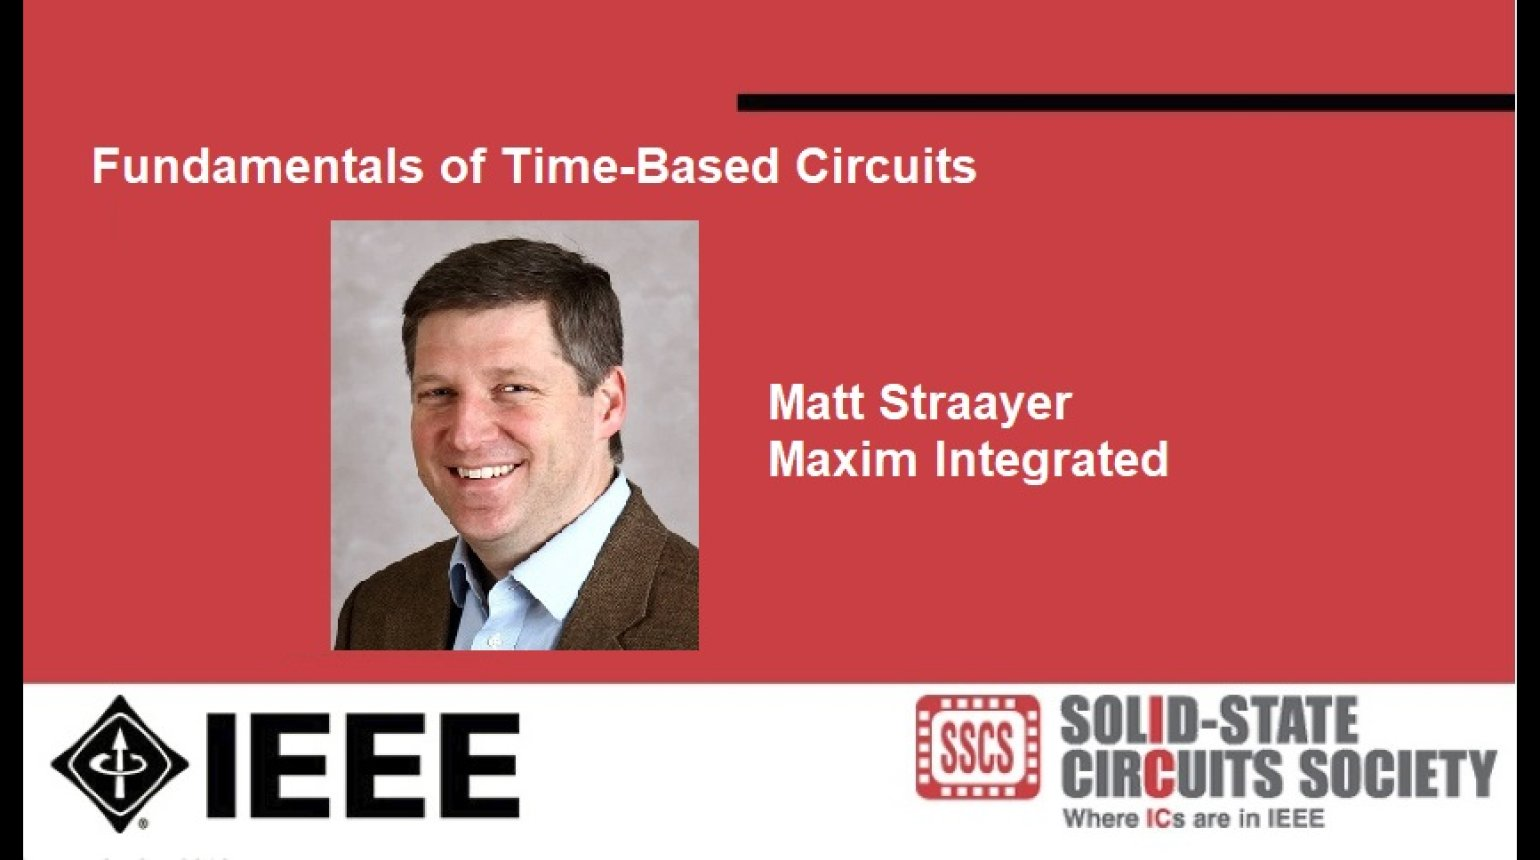 Fundamentals of Time-Based Circuits Video